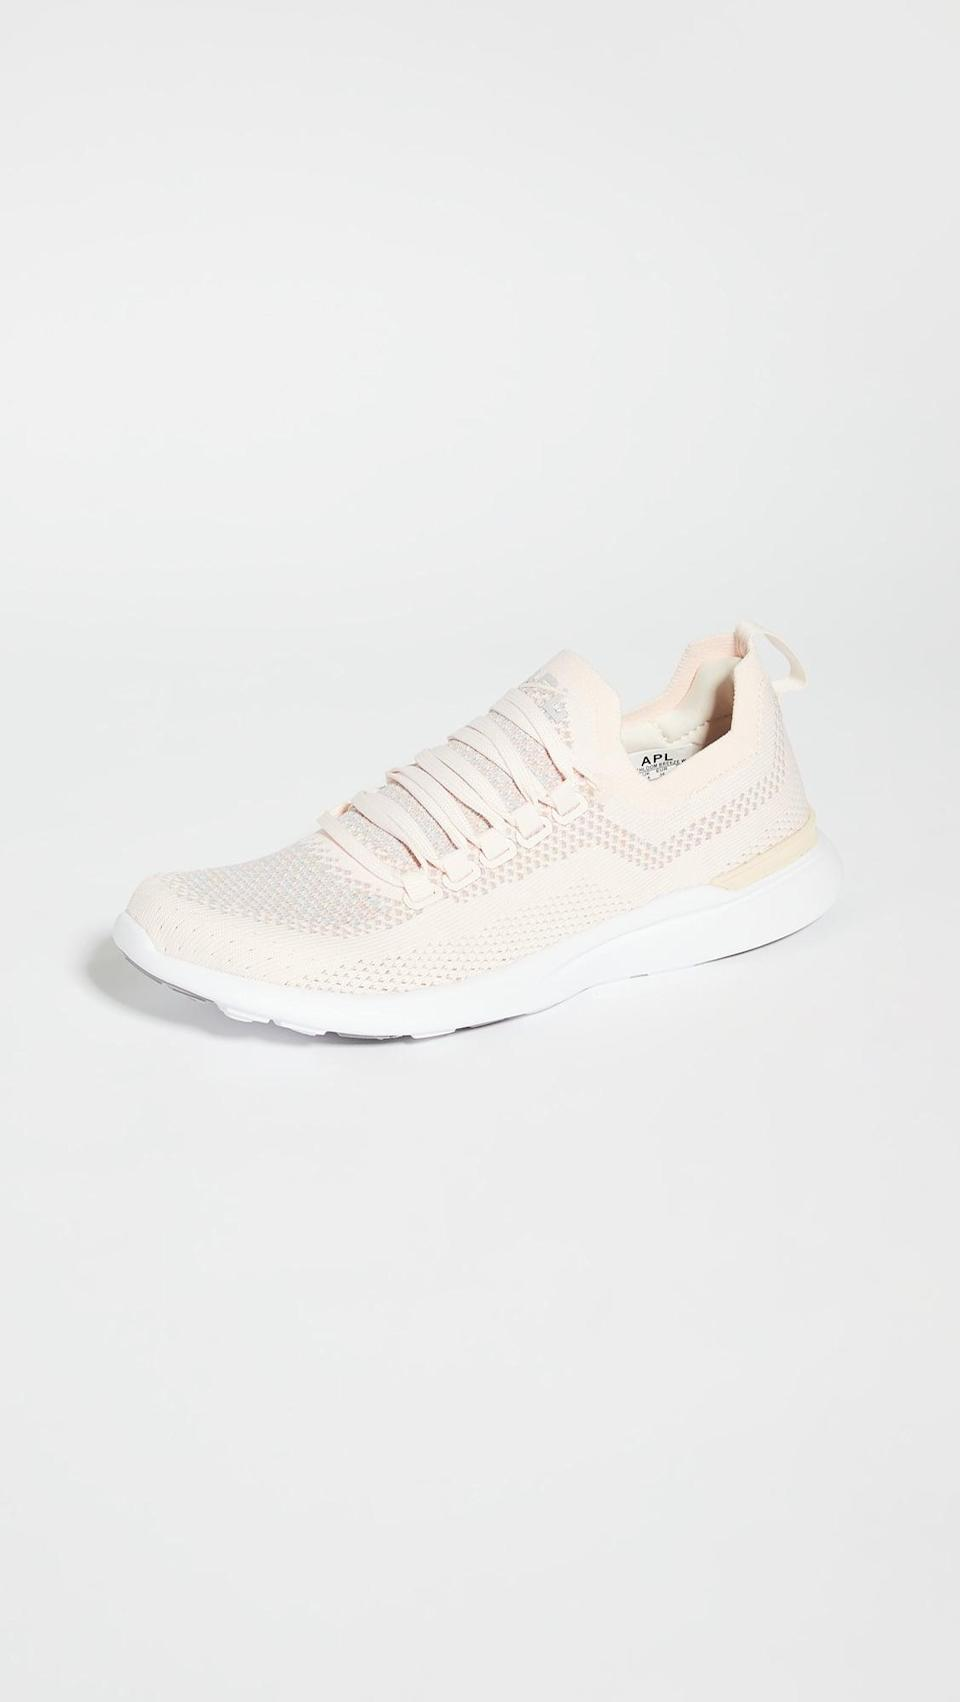 <p>These cool beige <span>APL Techloom Breeze Sneakers</span> ($200) were made for working out, but they're also so cute.</p>